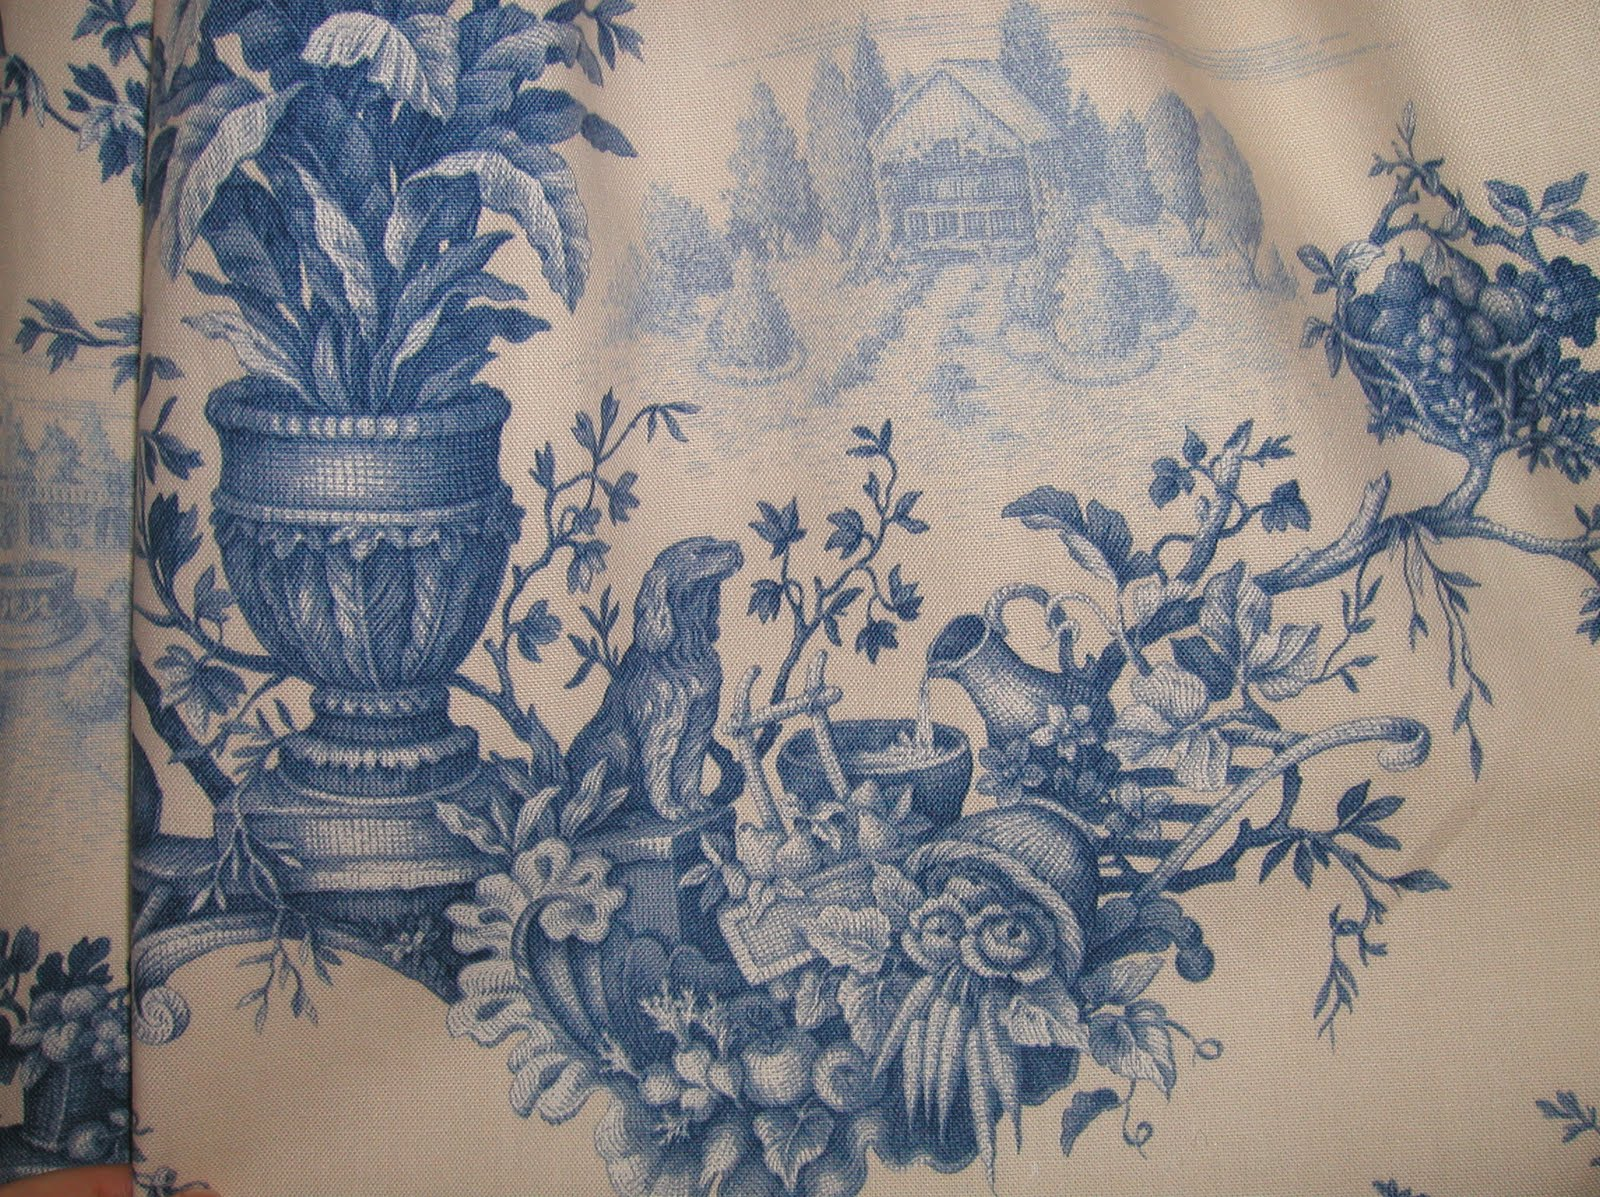 Blue And White Toile Bedroom: Teacup Lane: Blue And White Toile